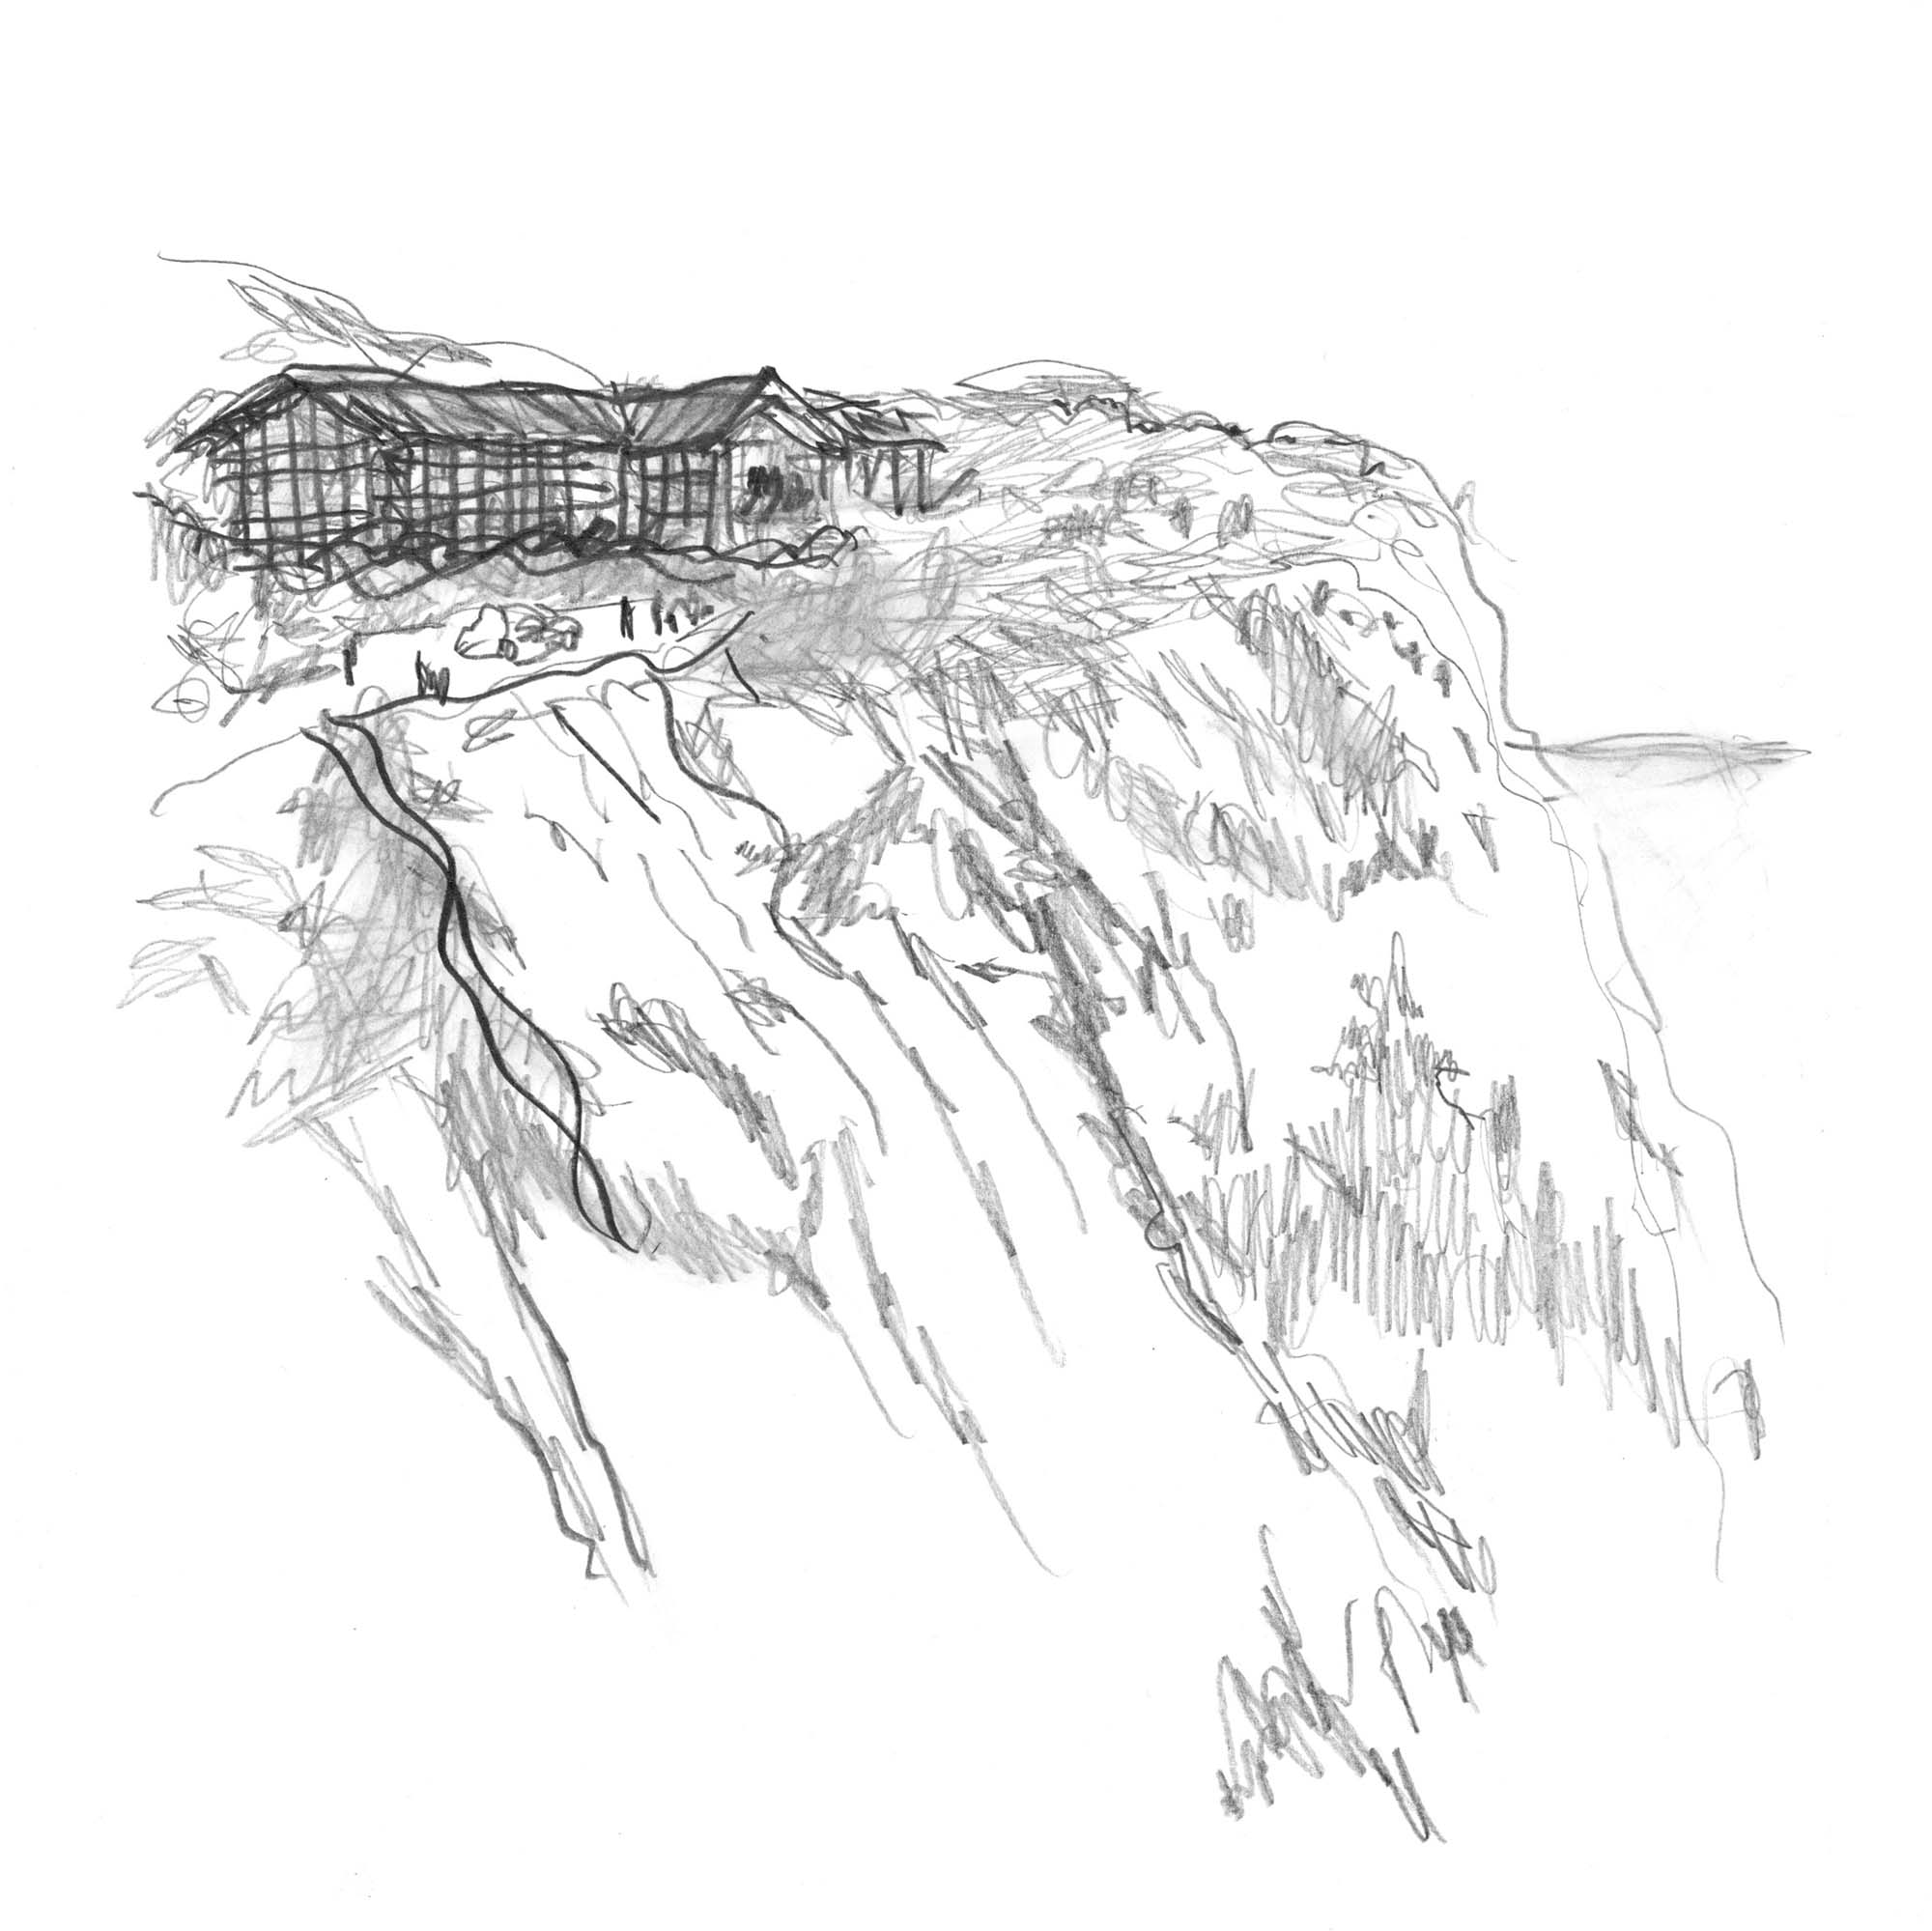 The sketch of the Rokkosan Silence Resort by Michele De Lucchi ©️Rokkosan silence resort